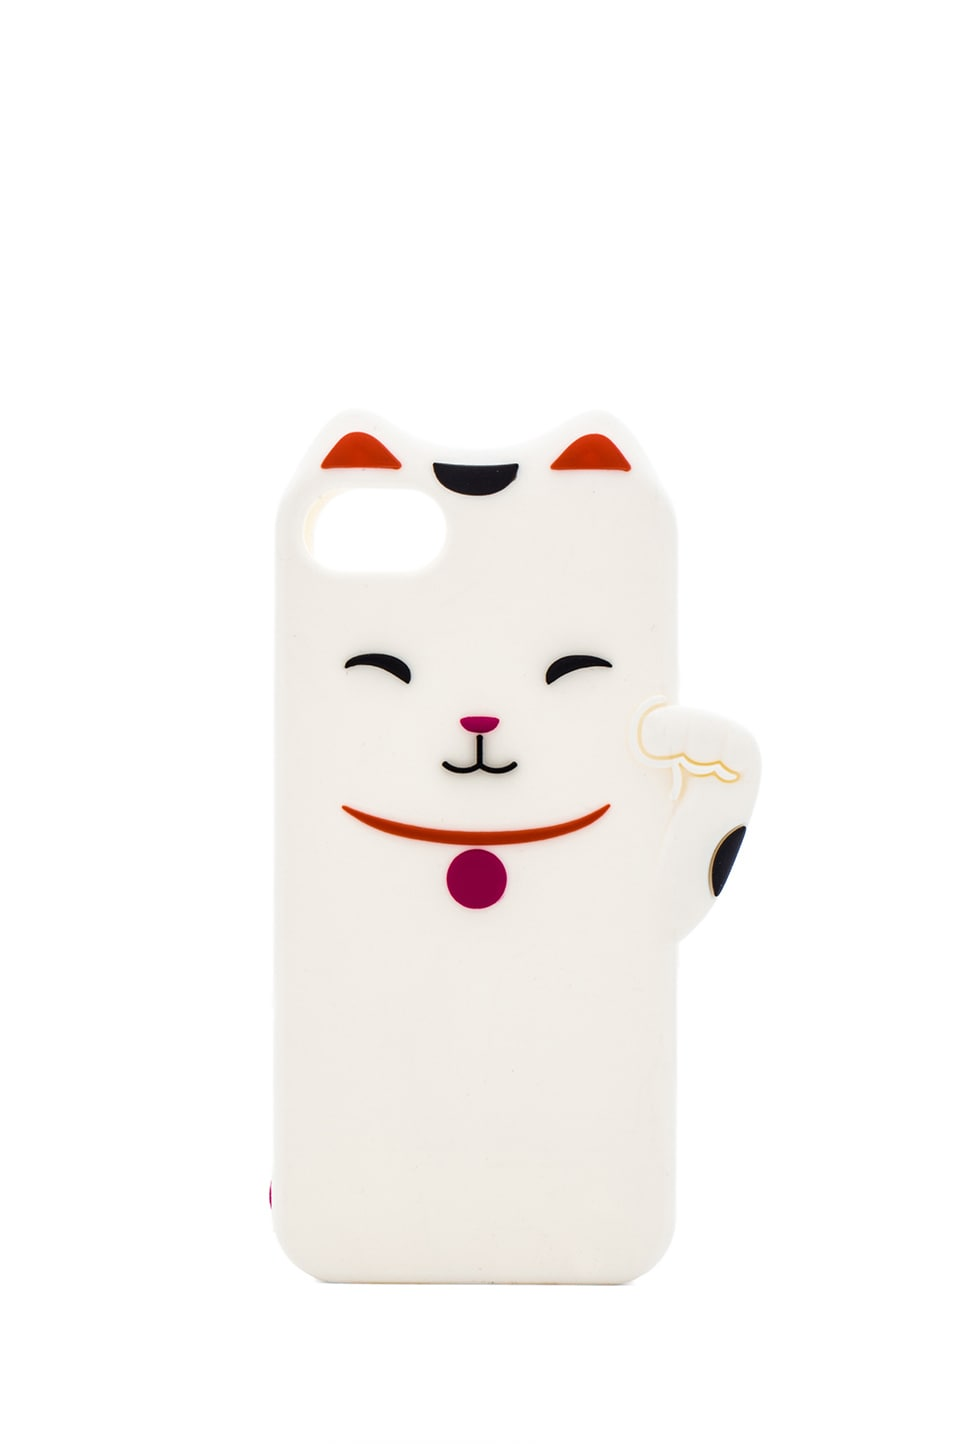 kate spade new york Cat iPhone 5 Case in Cream